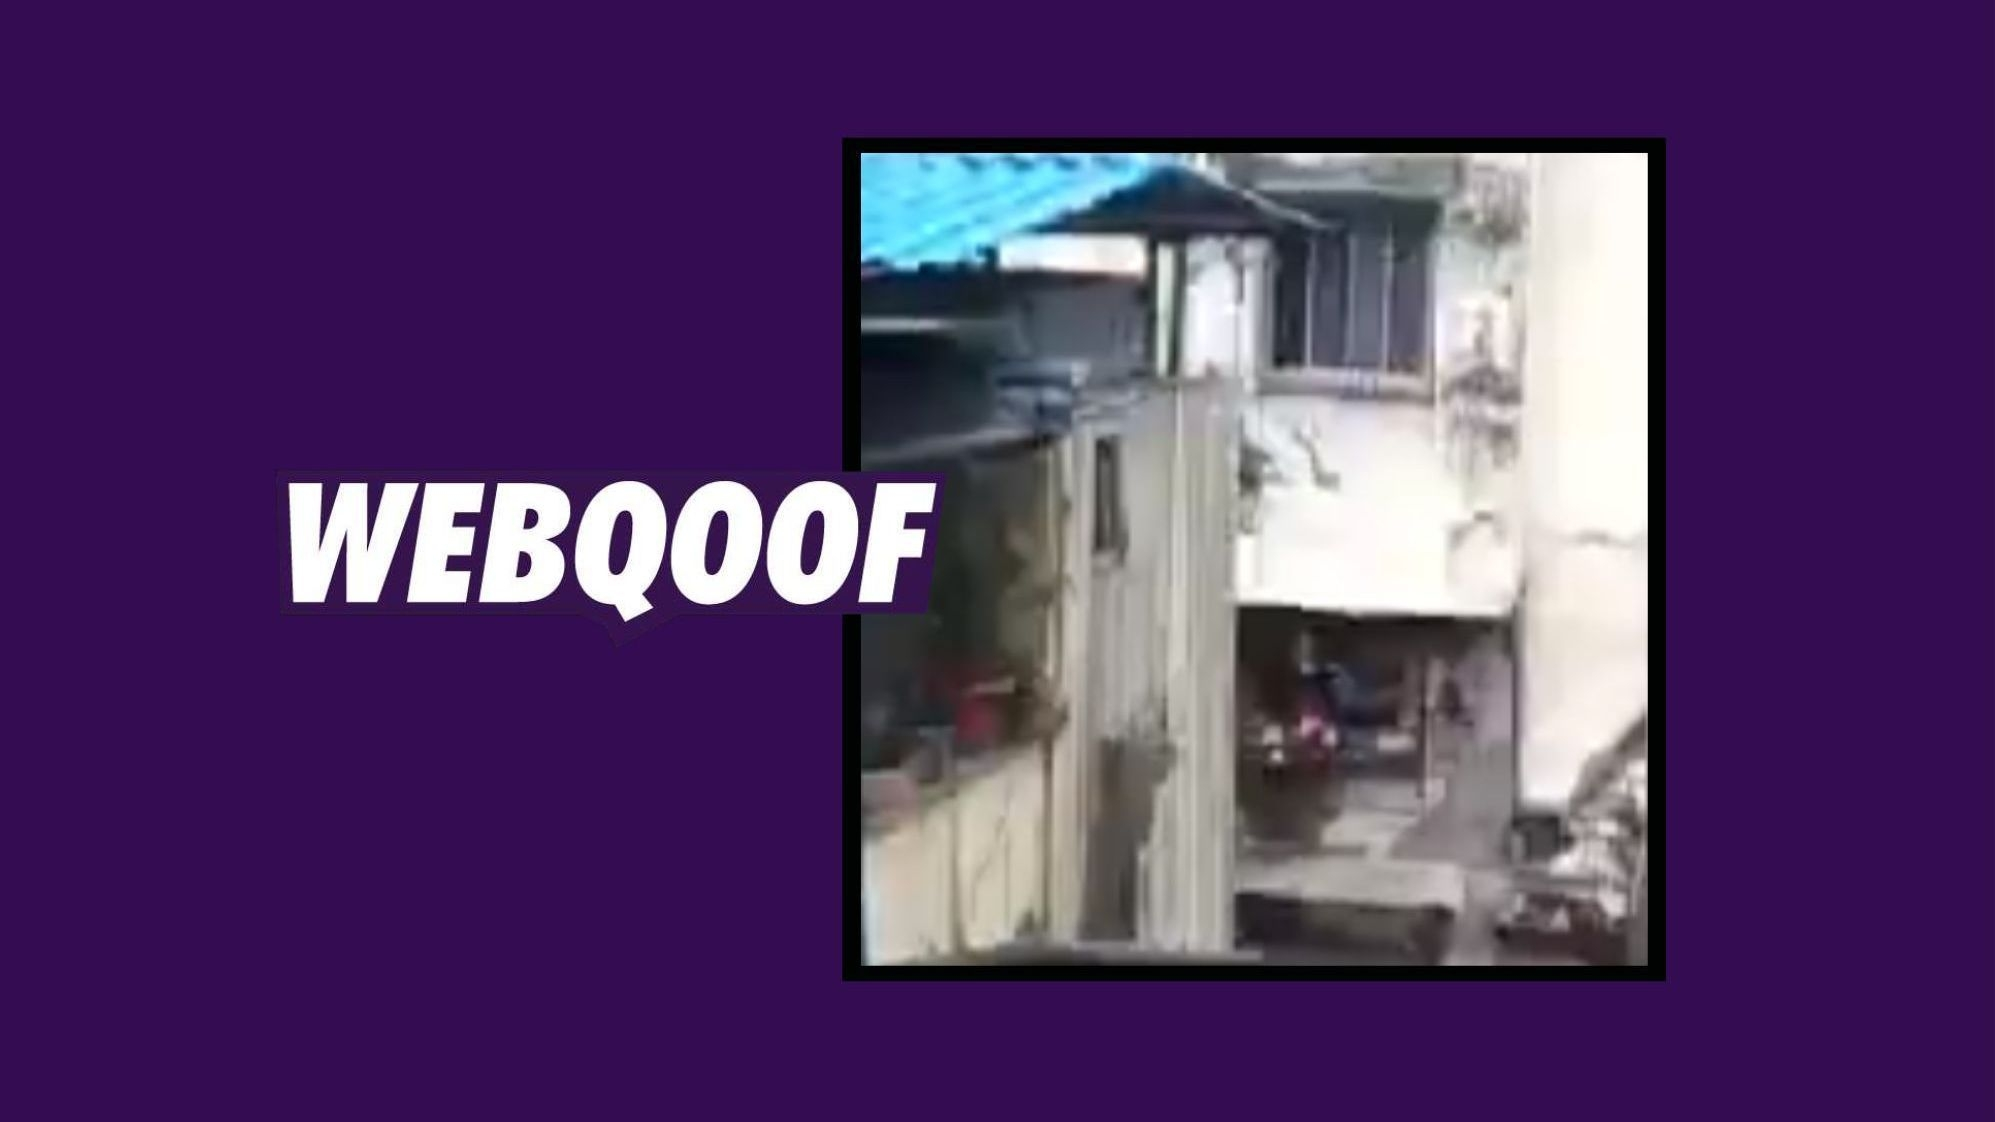 2013 Video Passed Off as That of Recent Mumbai Building Collapse